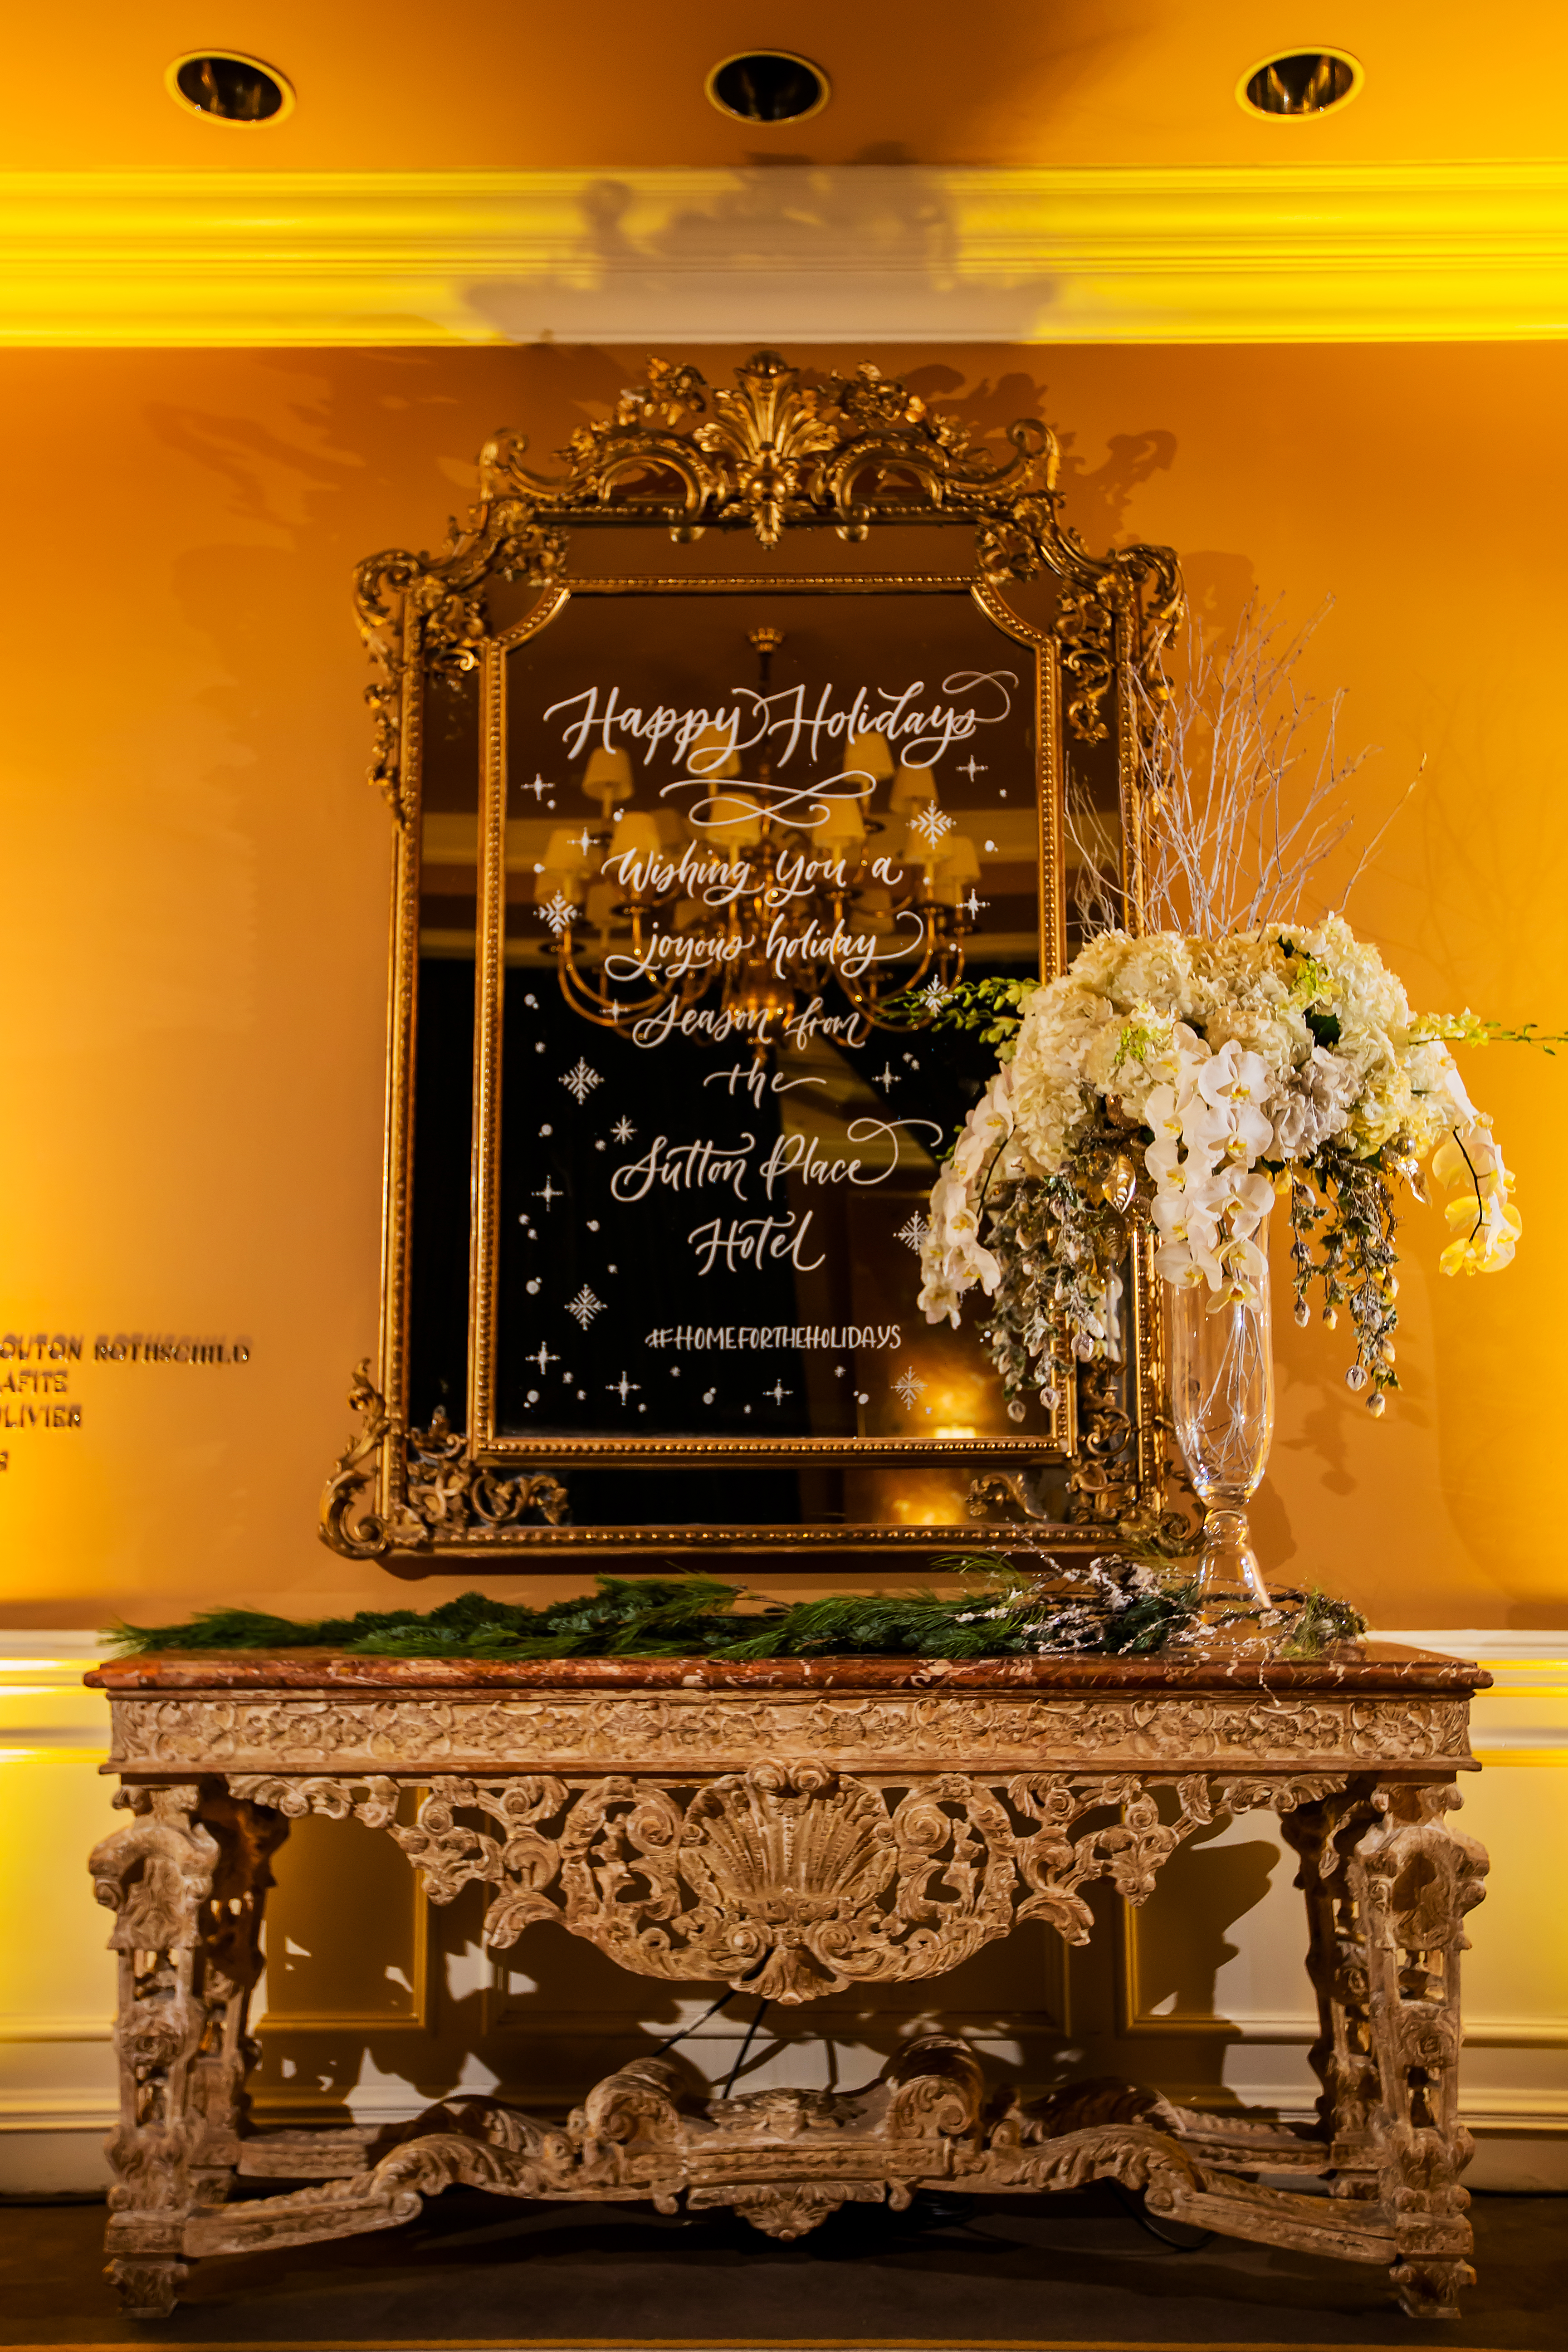 Home for the Holidays- A Holiday Tradition at the Sutton Place Hotel